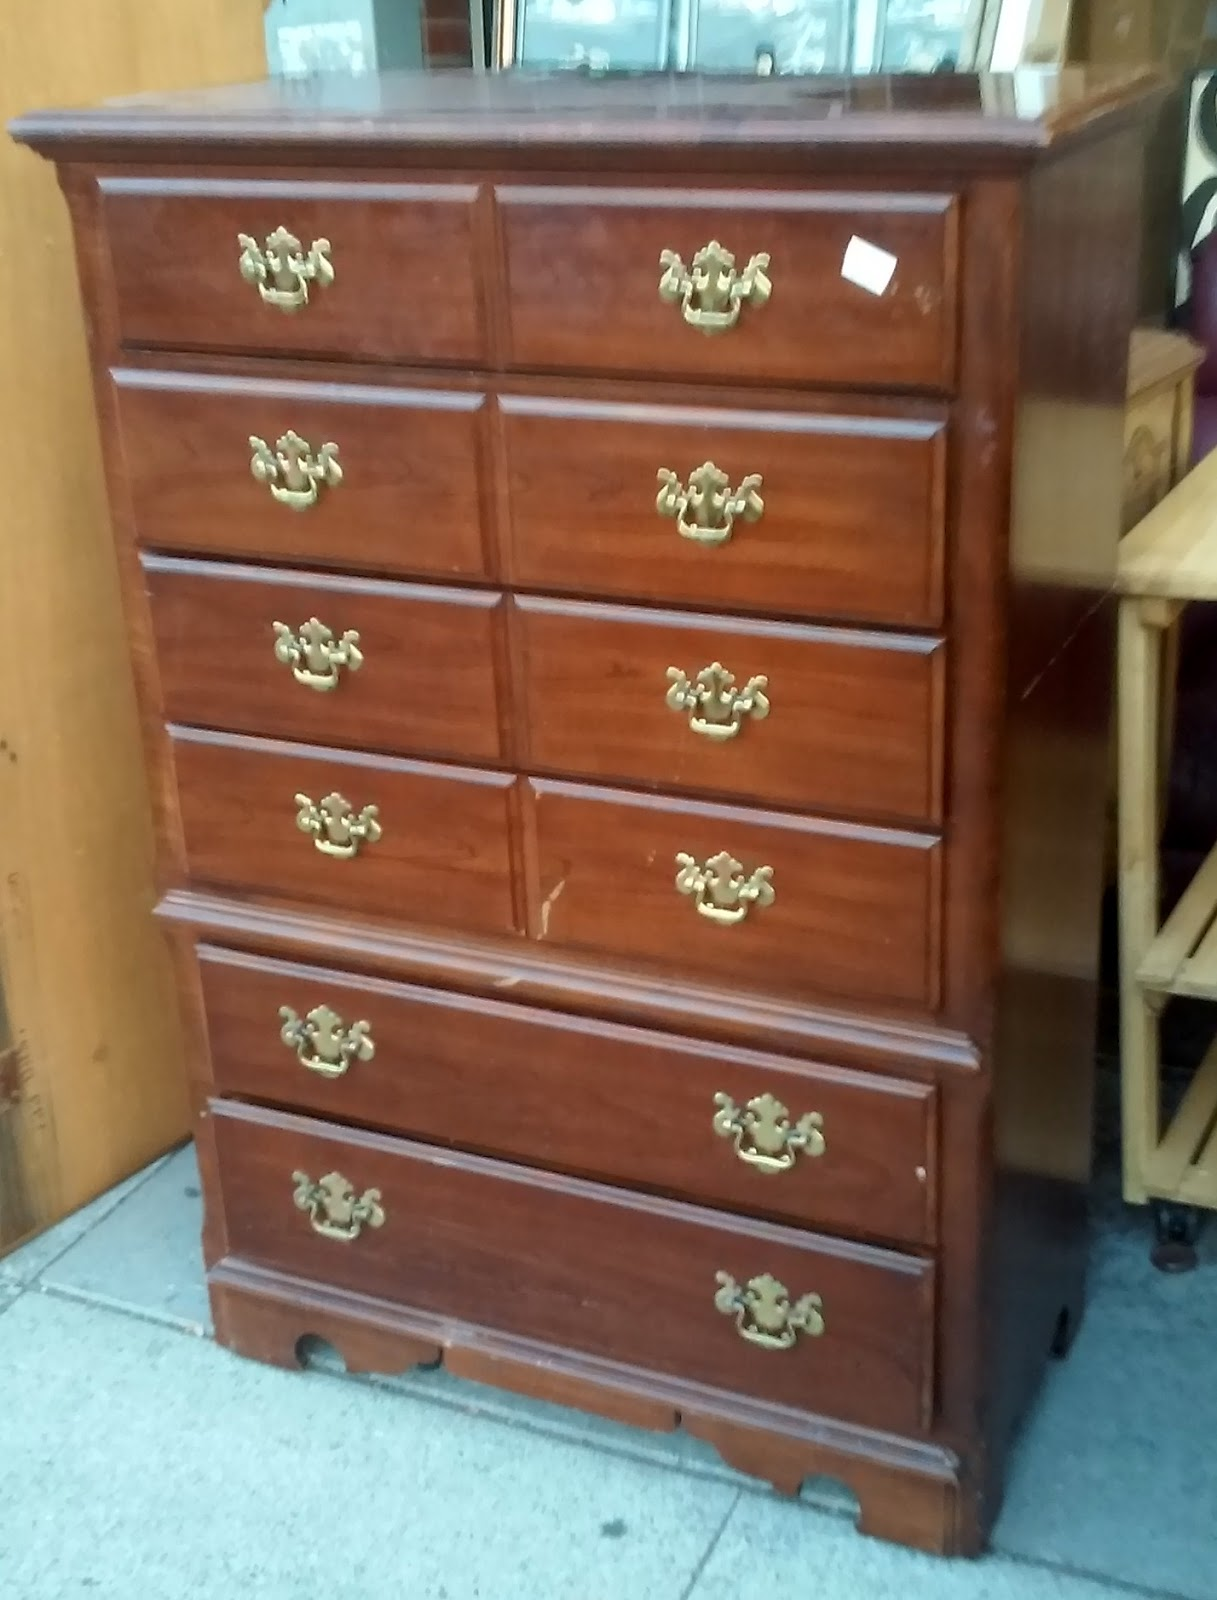 SOLD BARGAIN BUY 7913 Thomasville Winston Court 4 1 2 Tall Chest Of Drawers